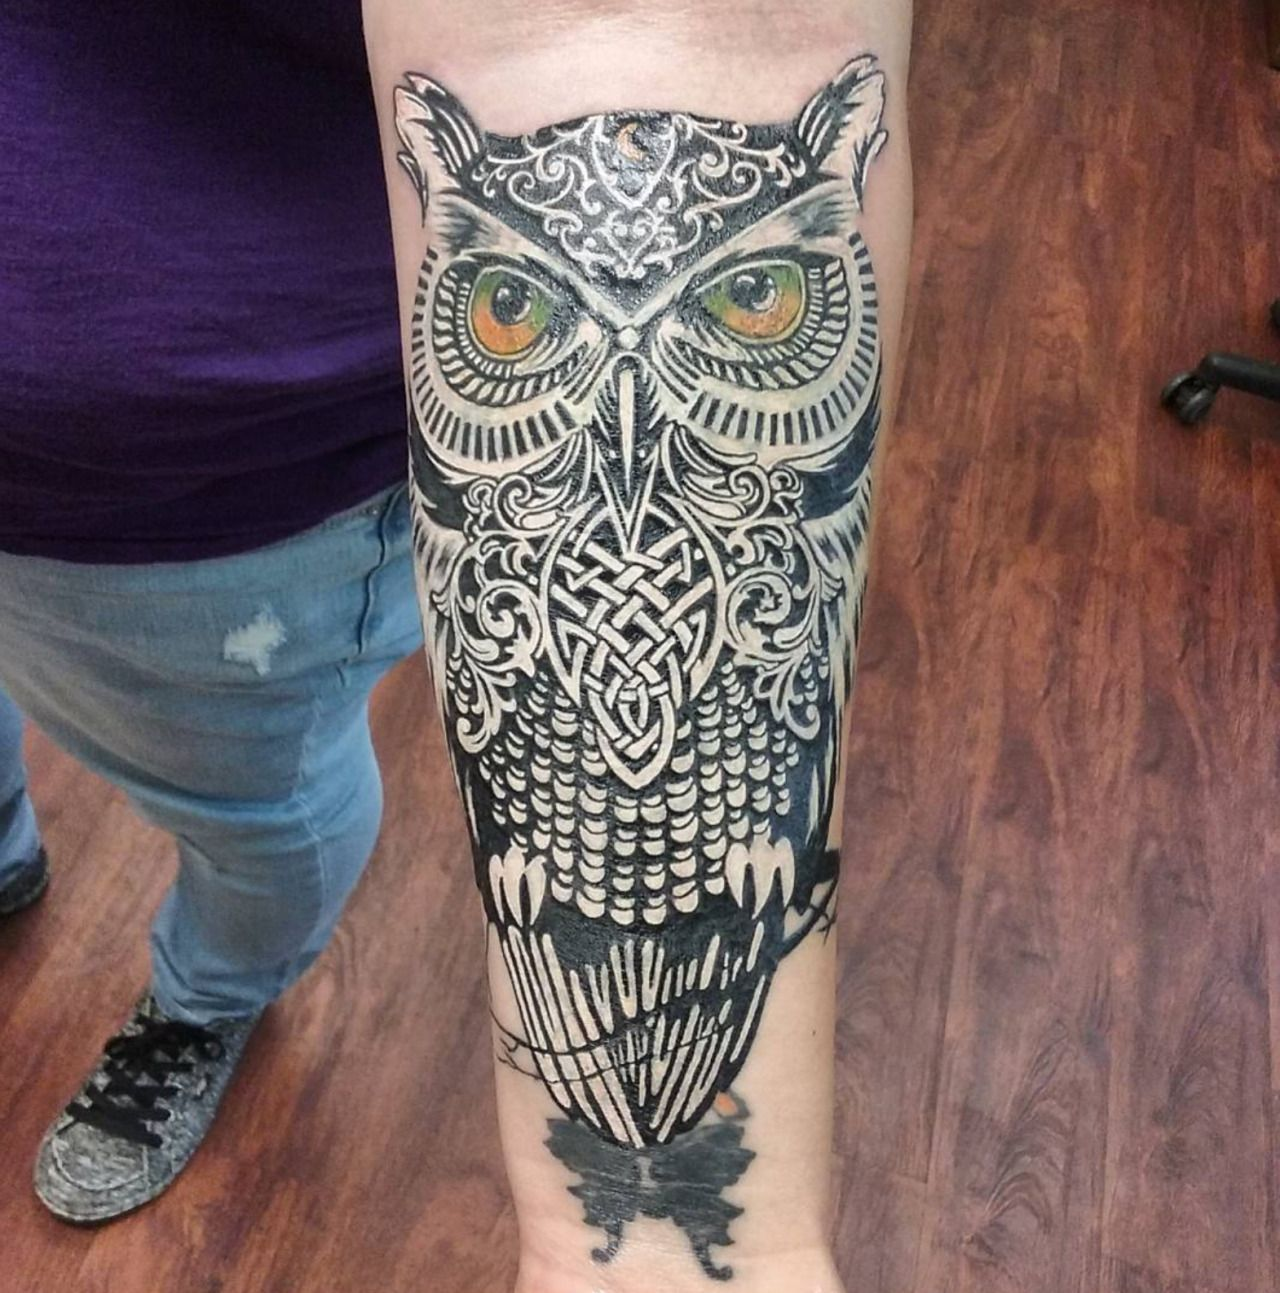 Great cover up tattoo ideas this cover up piece was done by leo fieschi at the art club in